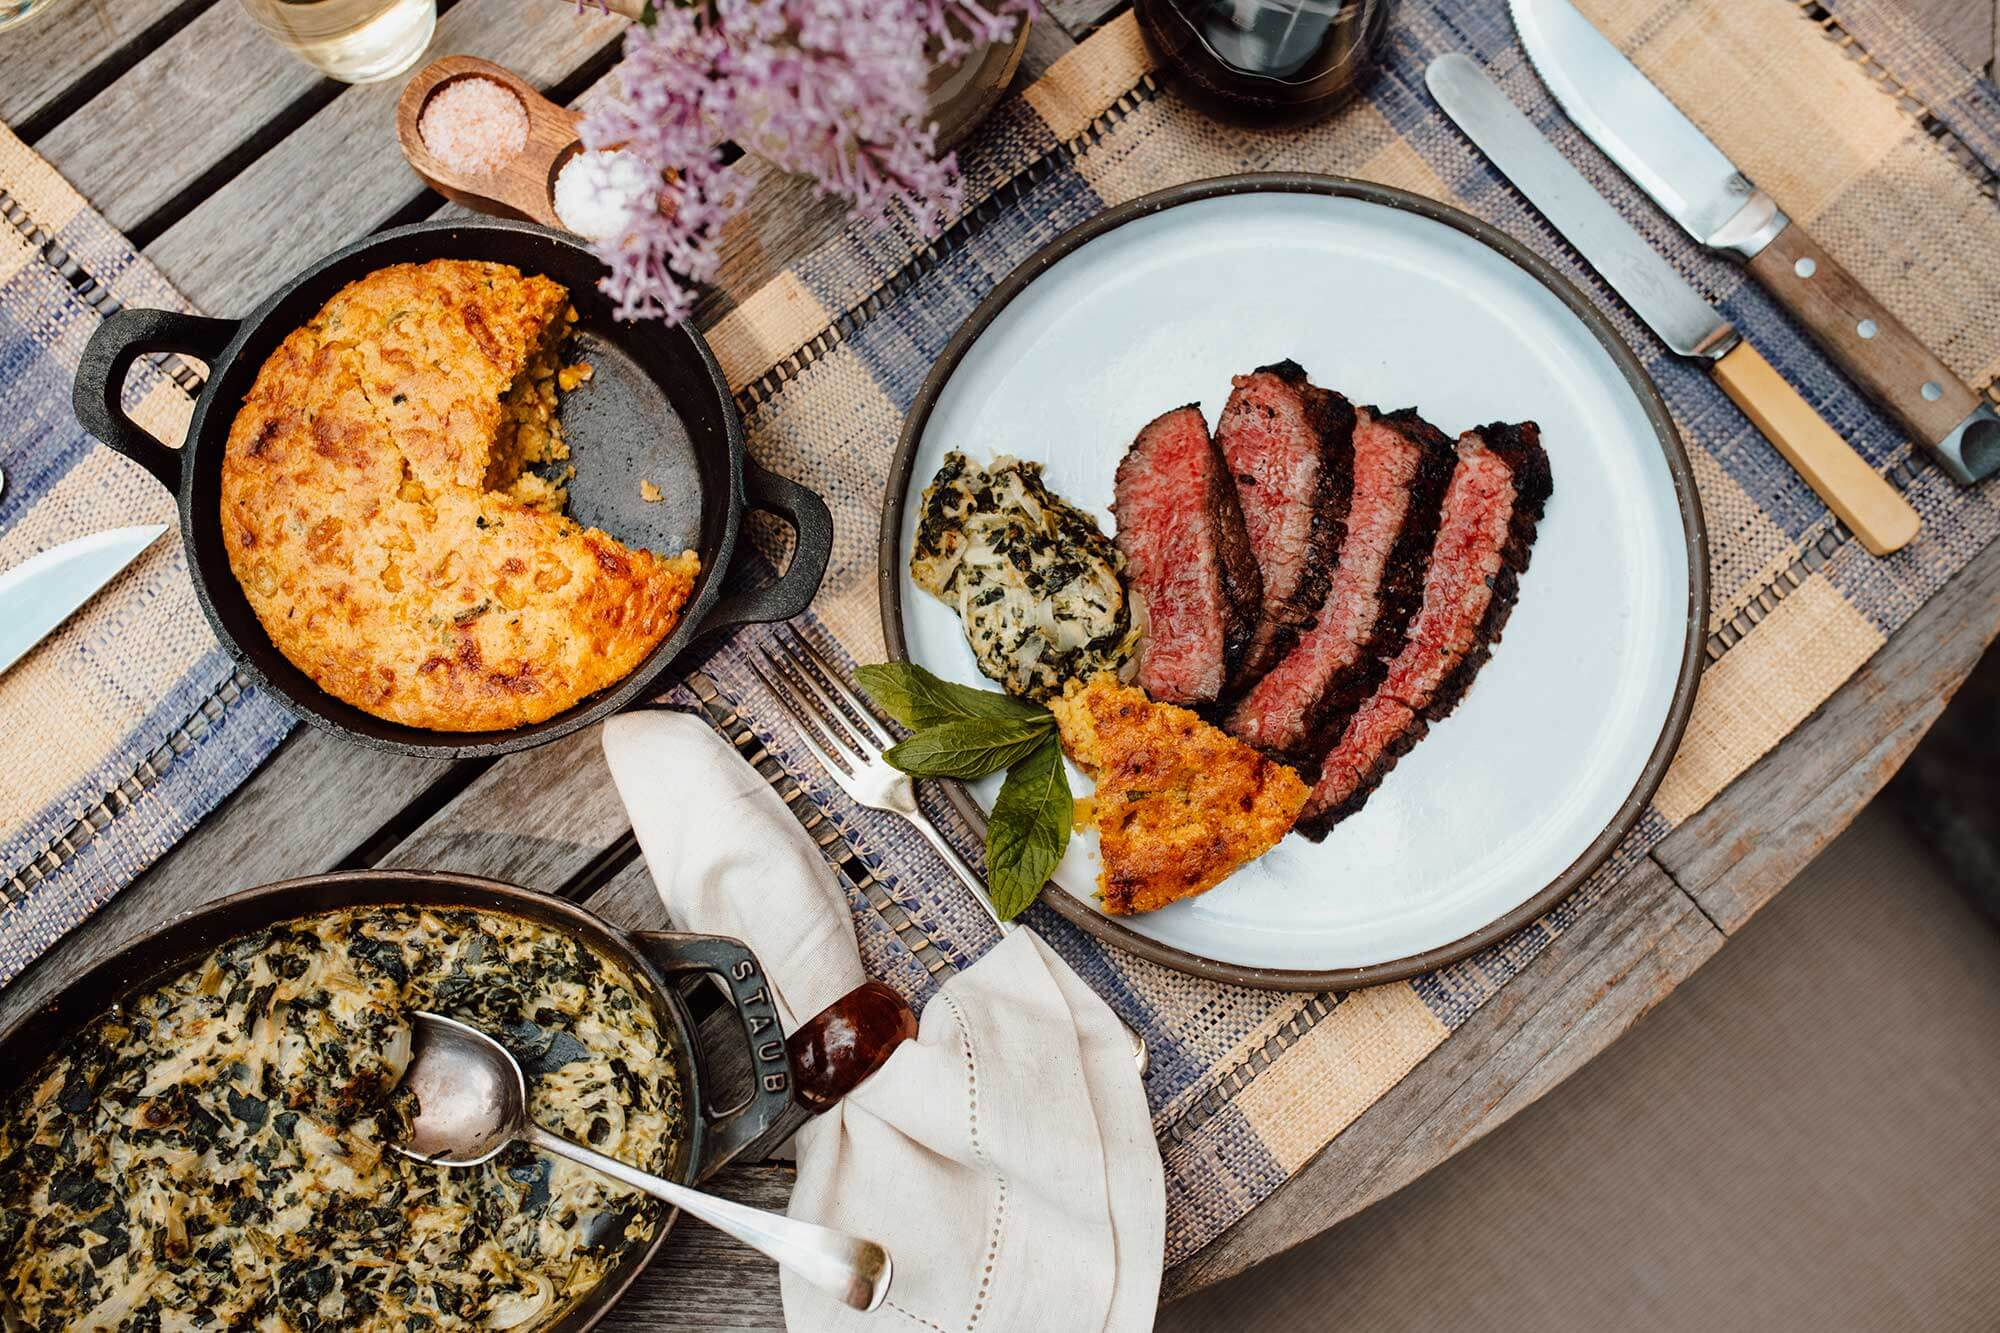 Cleaver Meat Co. flank steak and cornbread on a table set with flowers and a placemat